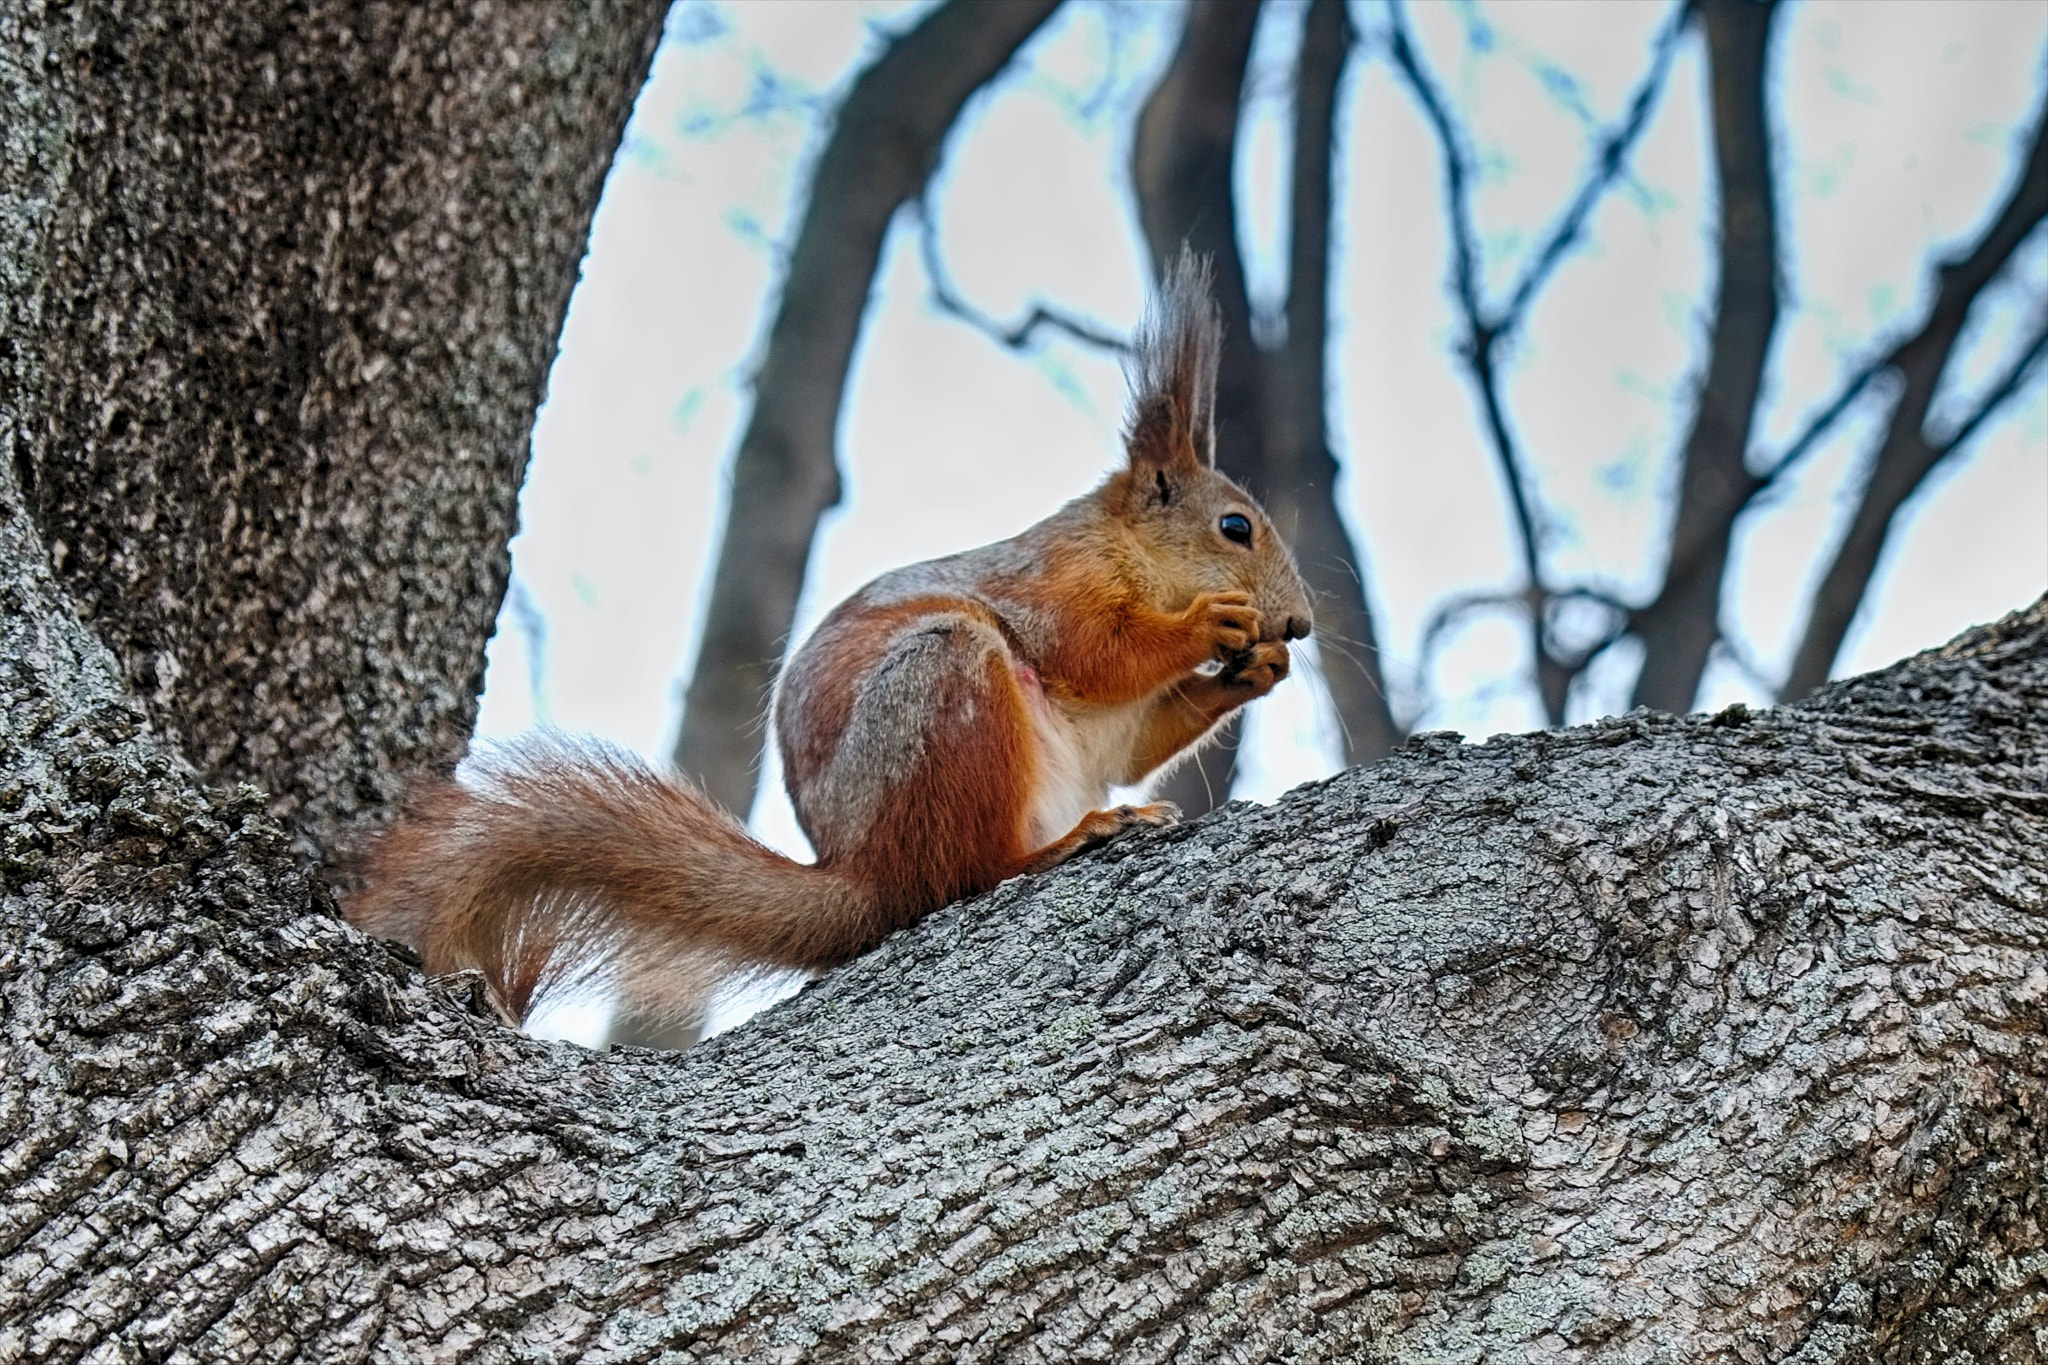 Photograph Squirrel by world_image on 500px